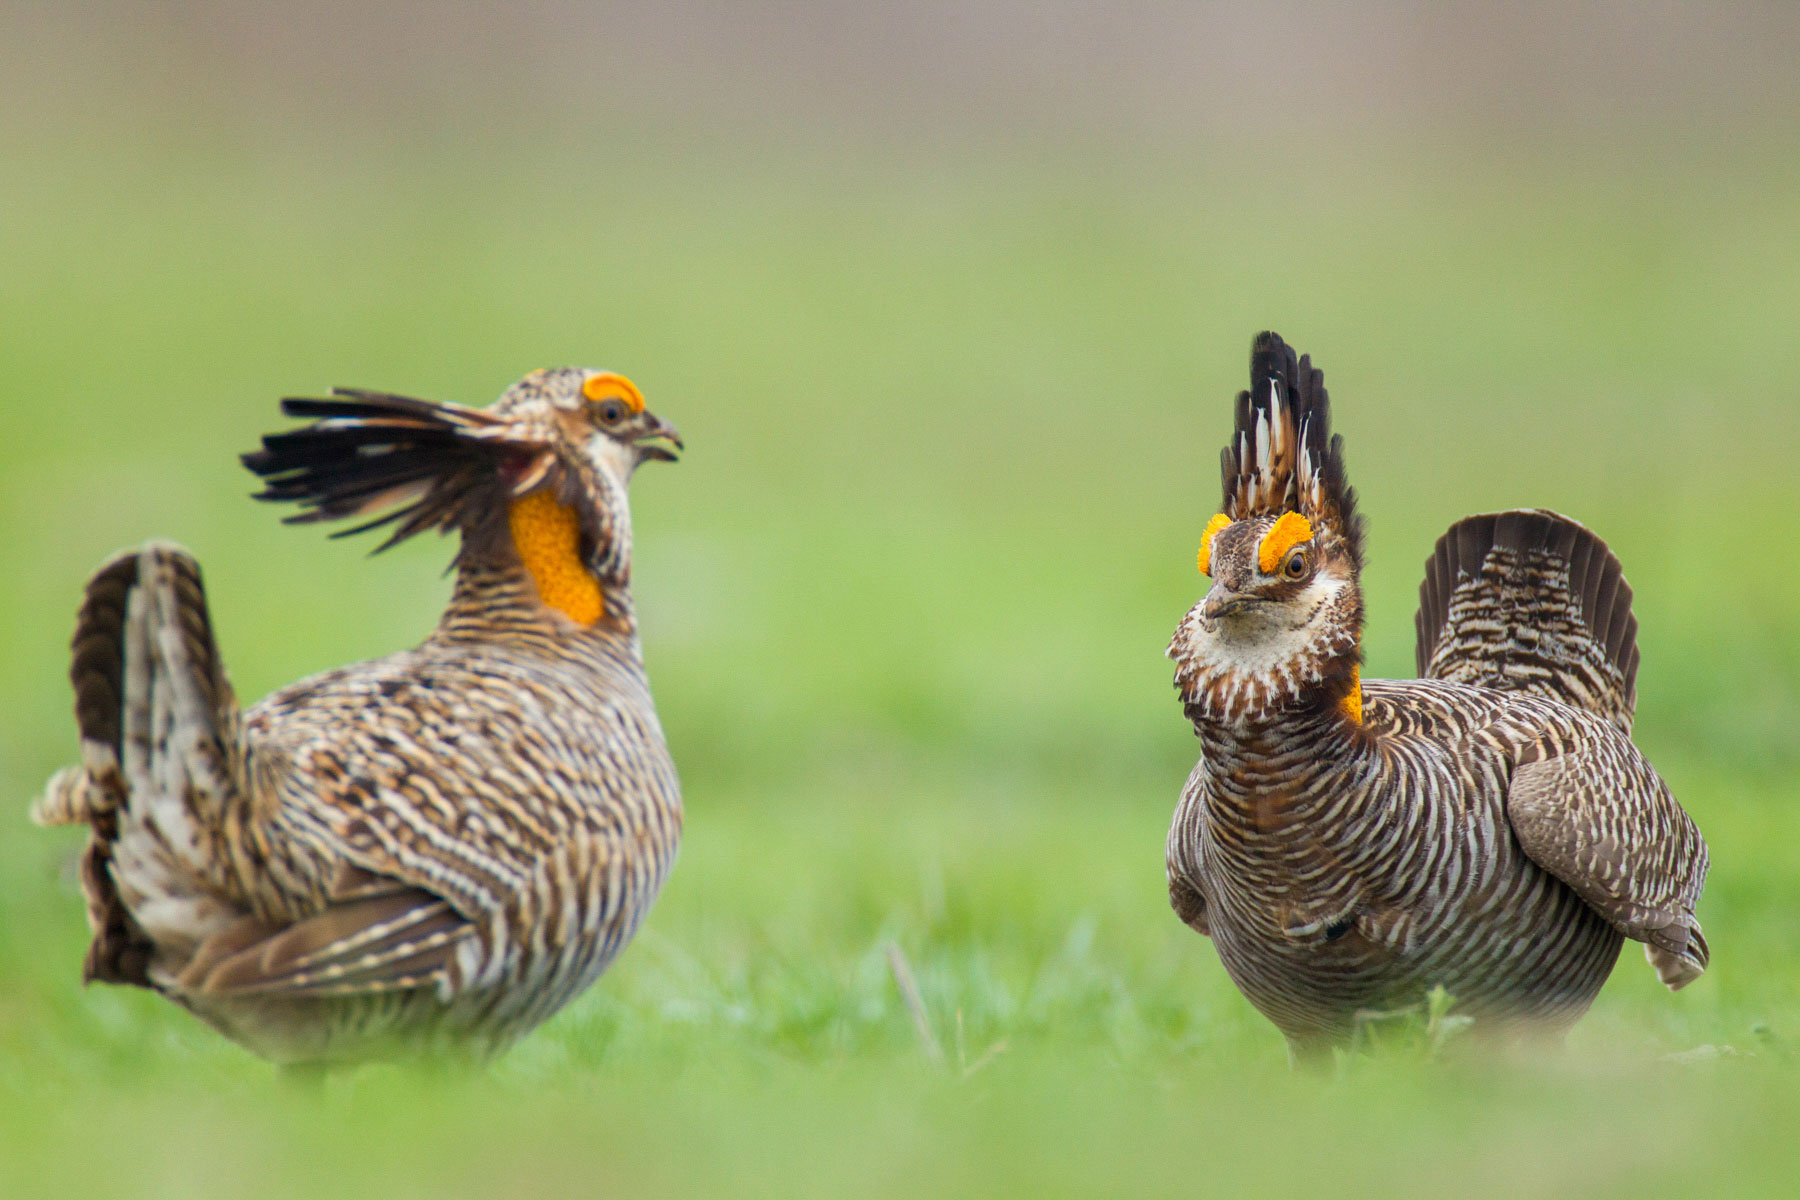 Two male prairie-chickens prepare for battle to defend their territory early in the morning at Attwater's Prairie-Chicken National Wildlife Refuge near Eagle Lake, Texas. Noppadol Paothong